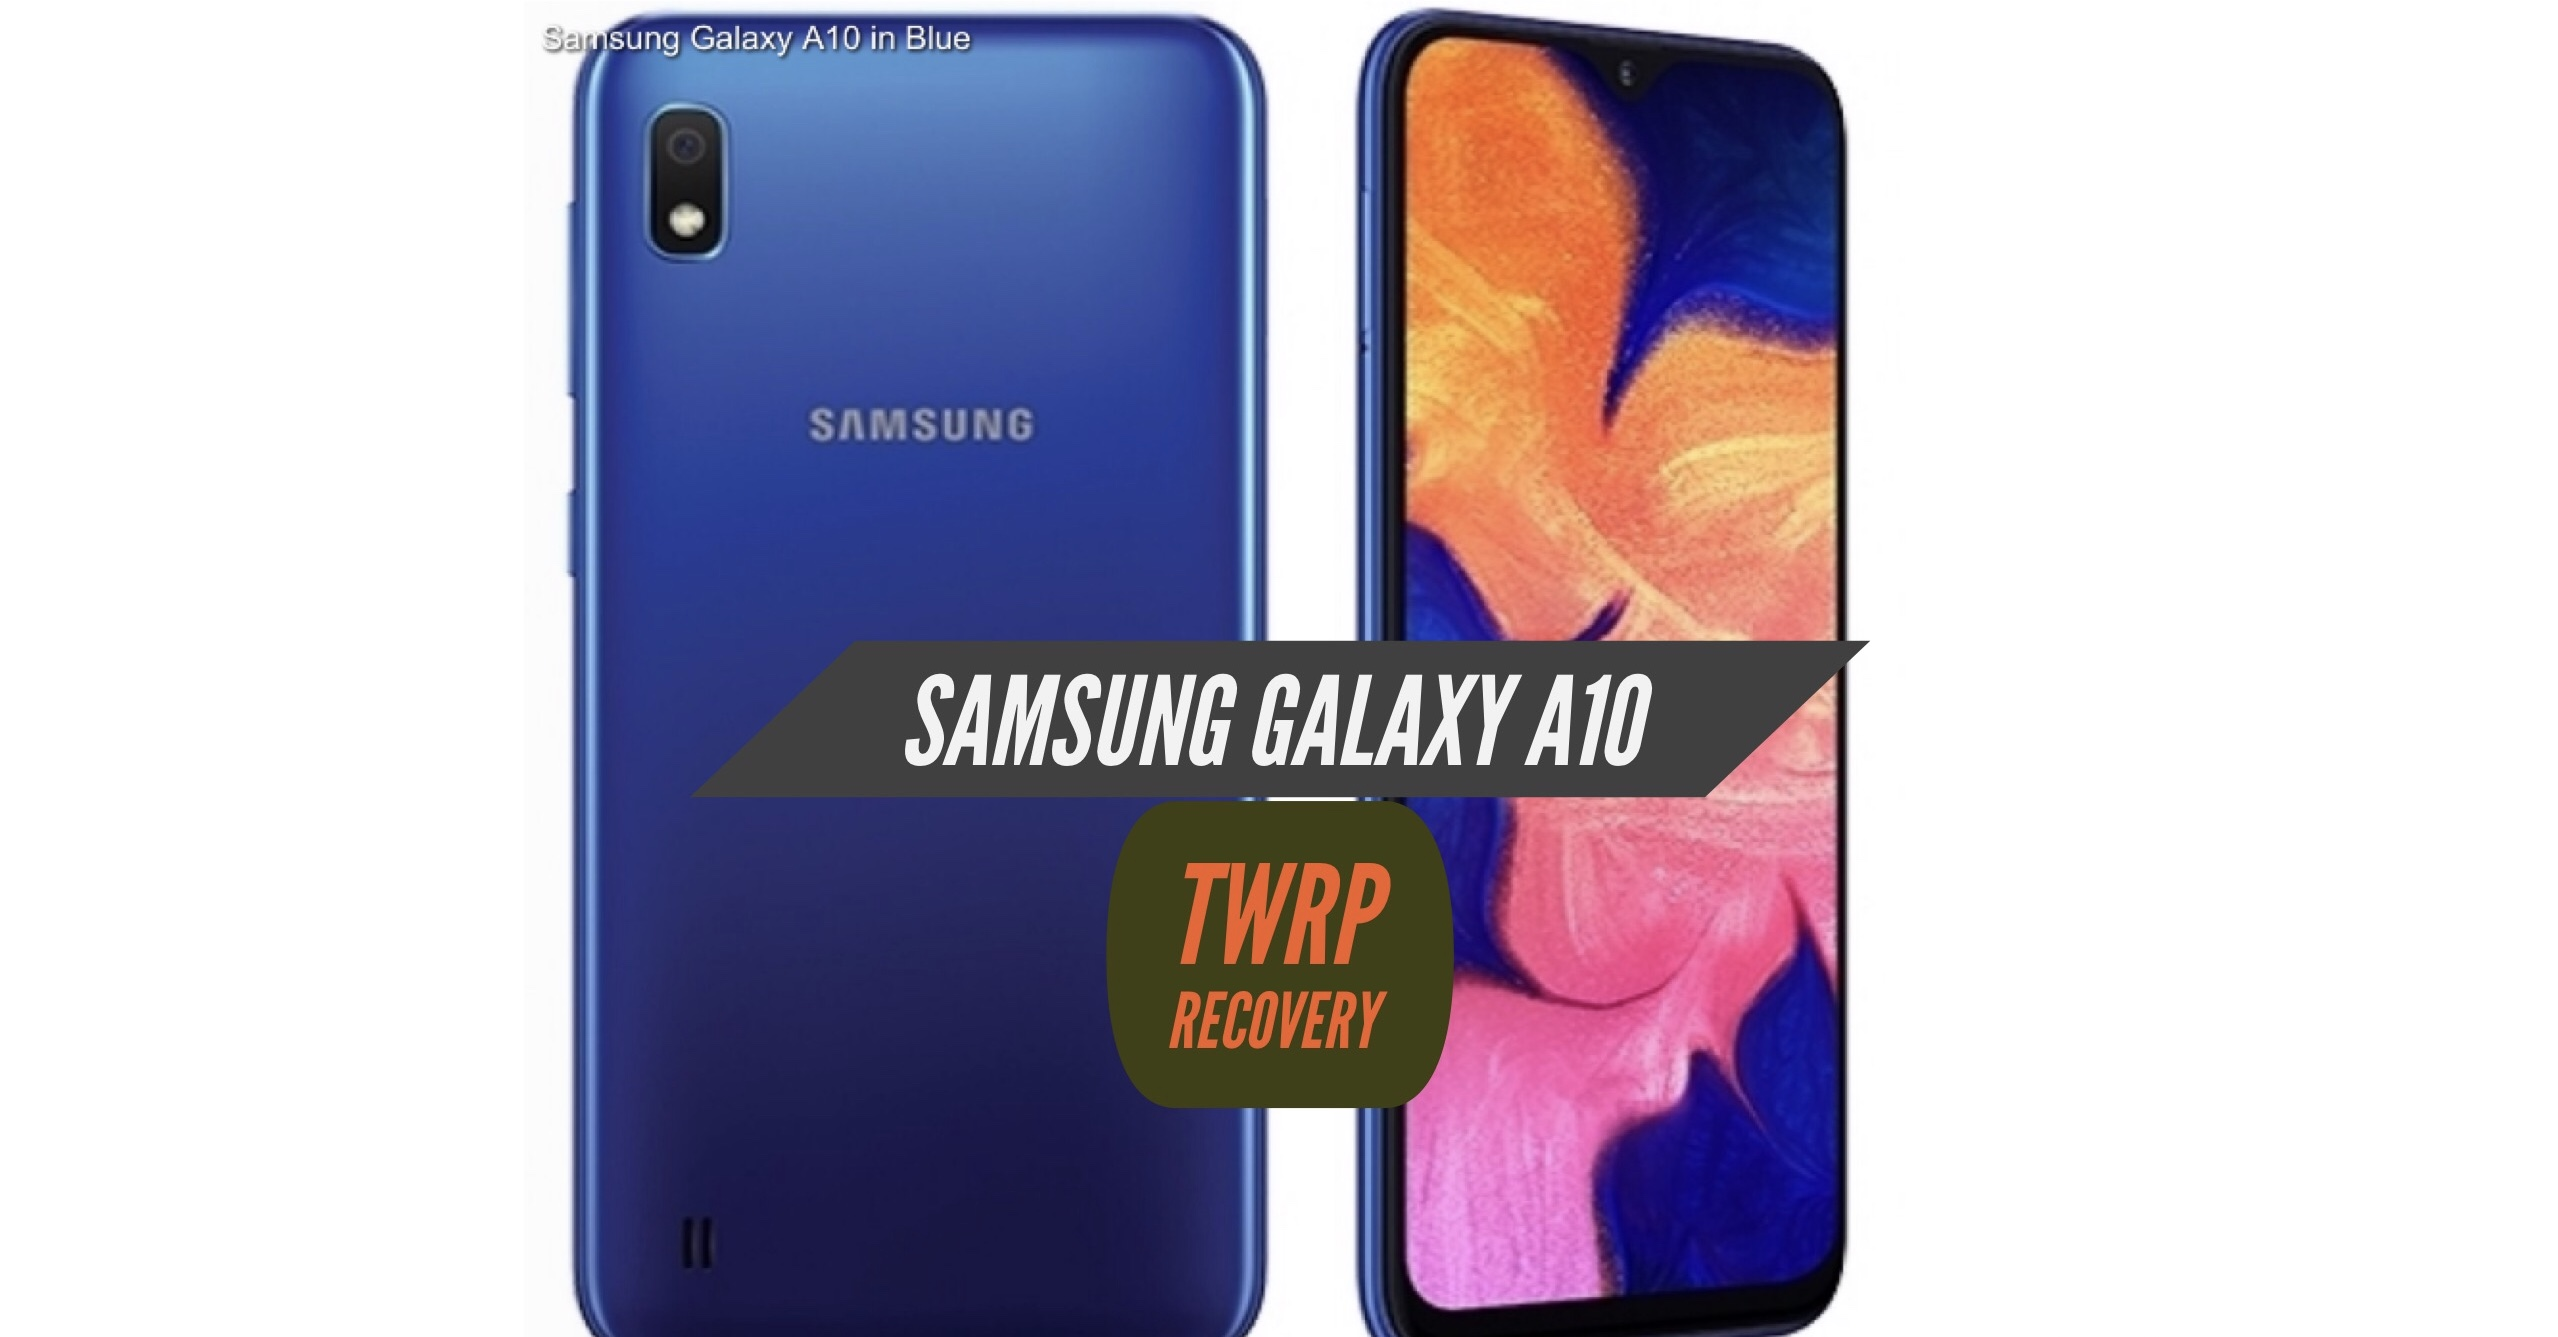 Samsung Galaxy A10 TWRP Recovery Installation - Two Easy